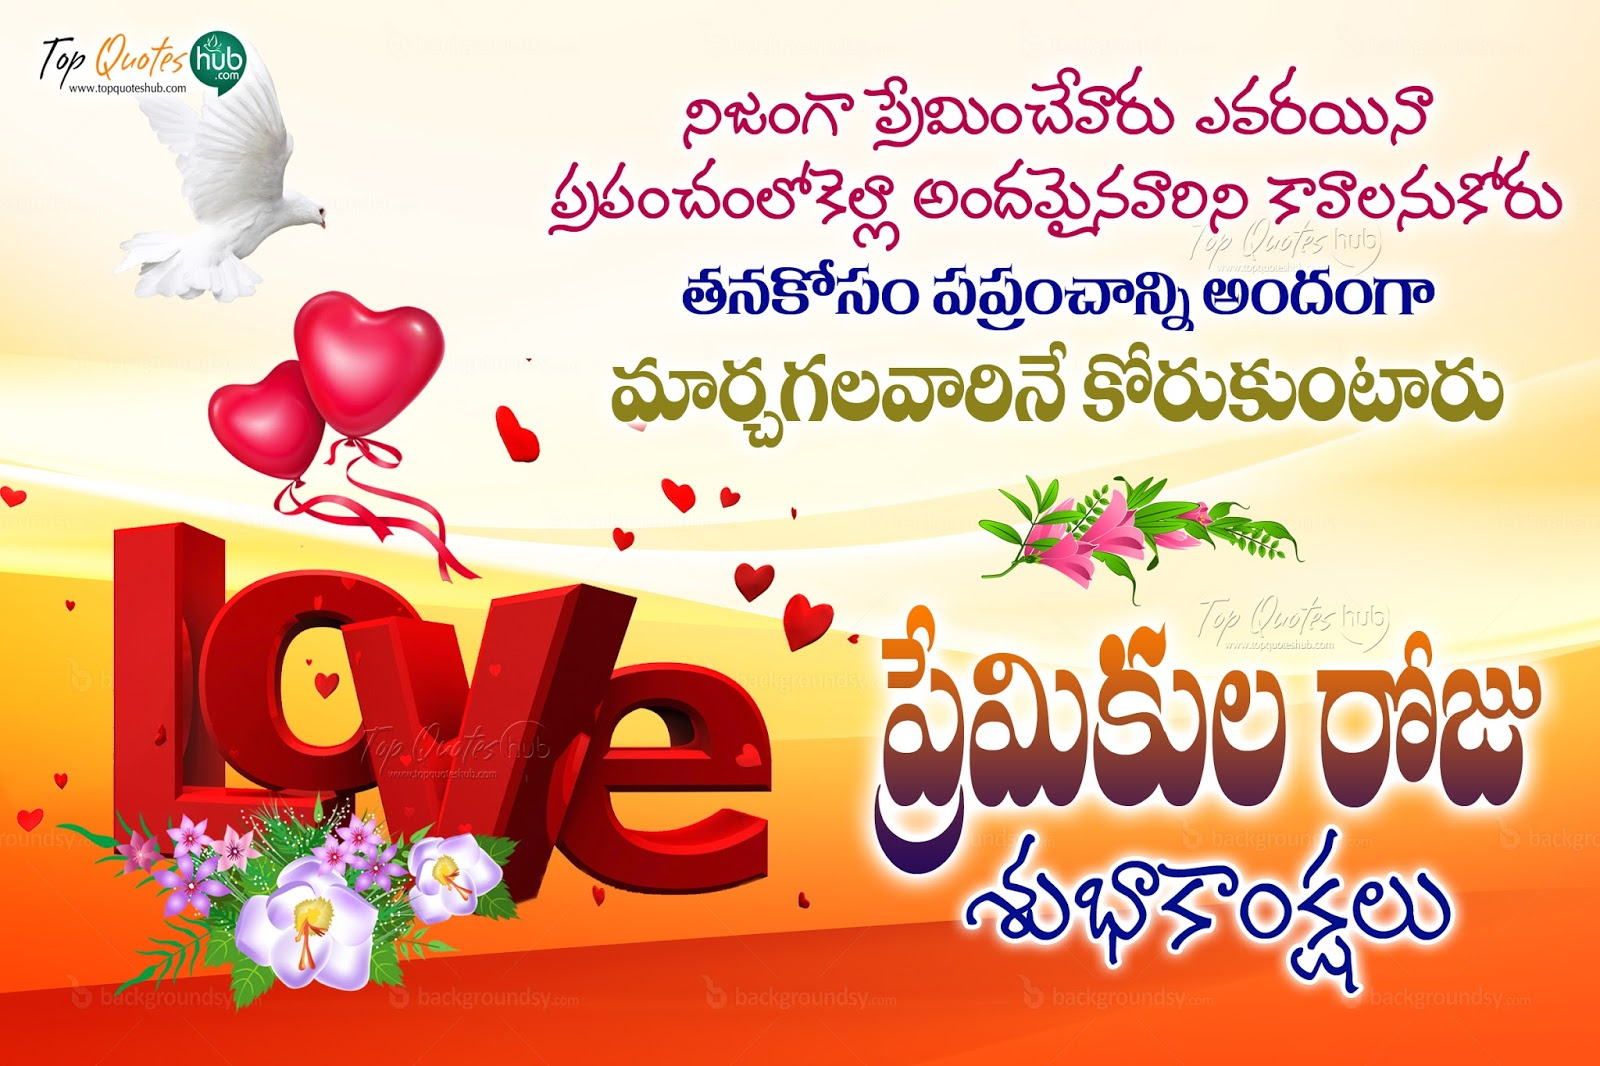 Telugu Valentines Day Best Quotes With Images N Hdwallpapaers